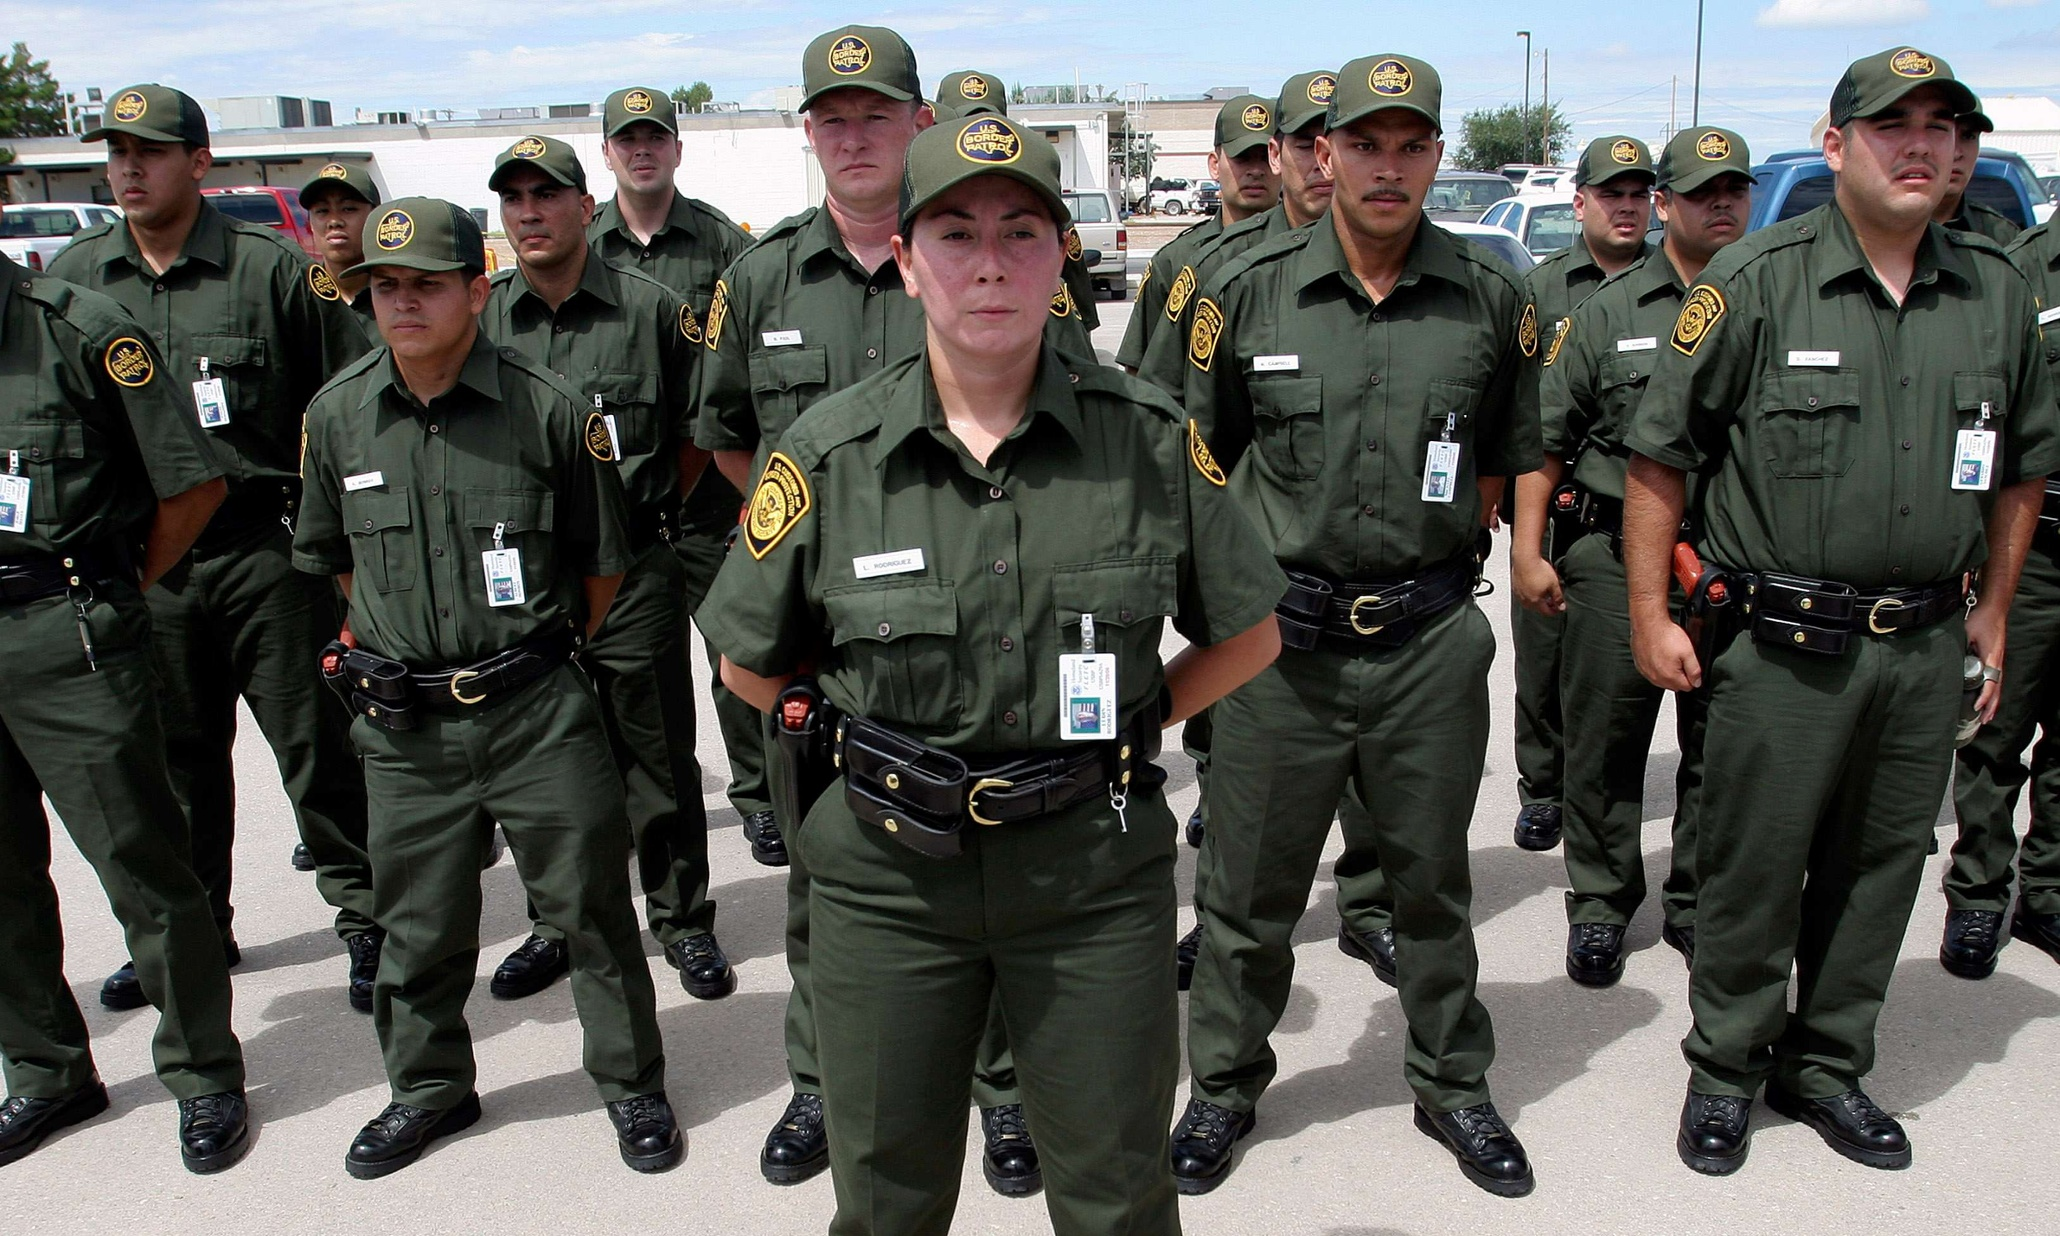 Dating a border patrol agent